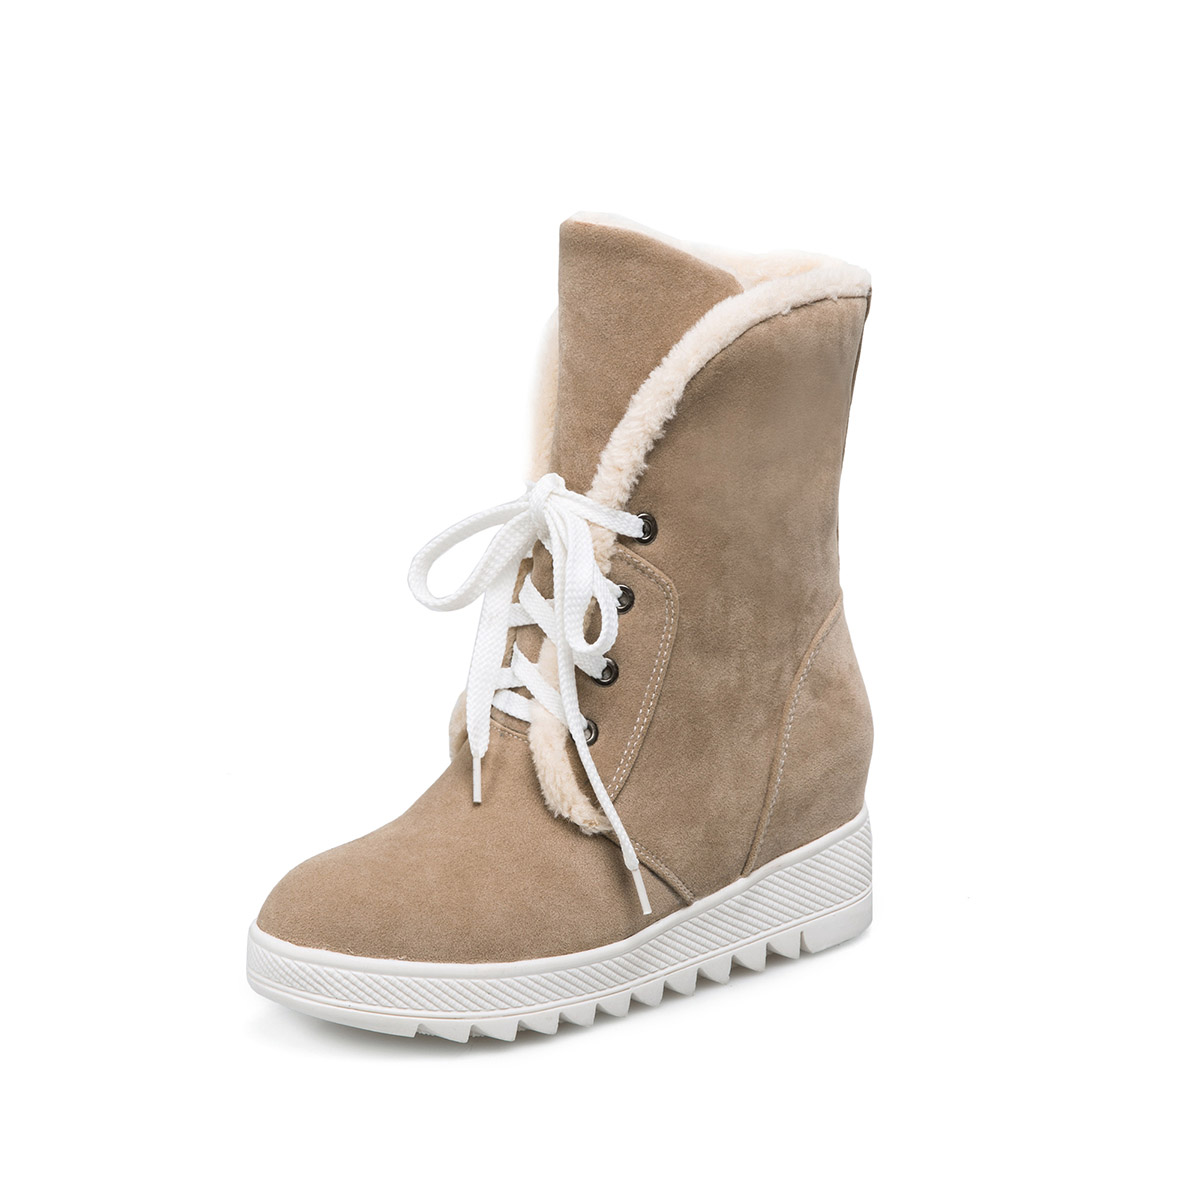 Brand New Sales Warm Winter Black Gray Women Ankle Snow Boots Fashion Lady Wedge Casual Shoes Lace up EHA66 Plus Big size 43 10